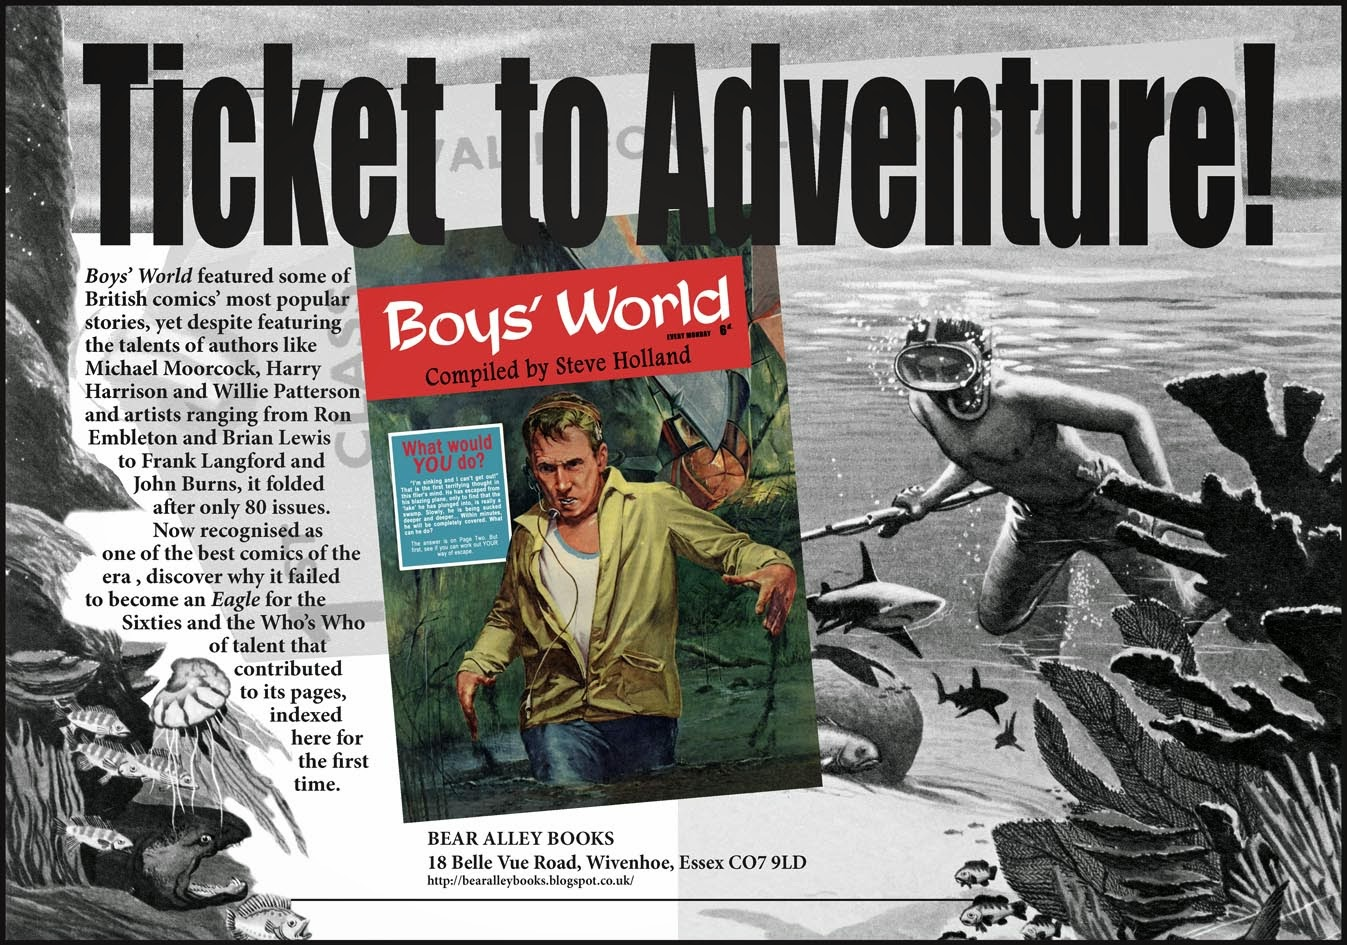 http://bearalleybooks.blogspot.co.uk/2013/08/boys-world-ticket-to-adventure.html